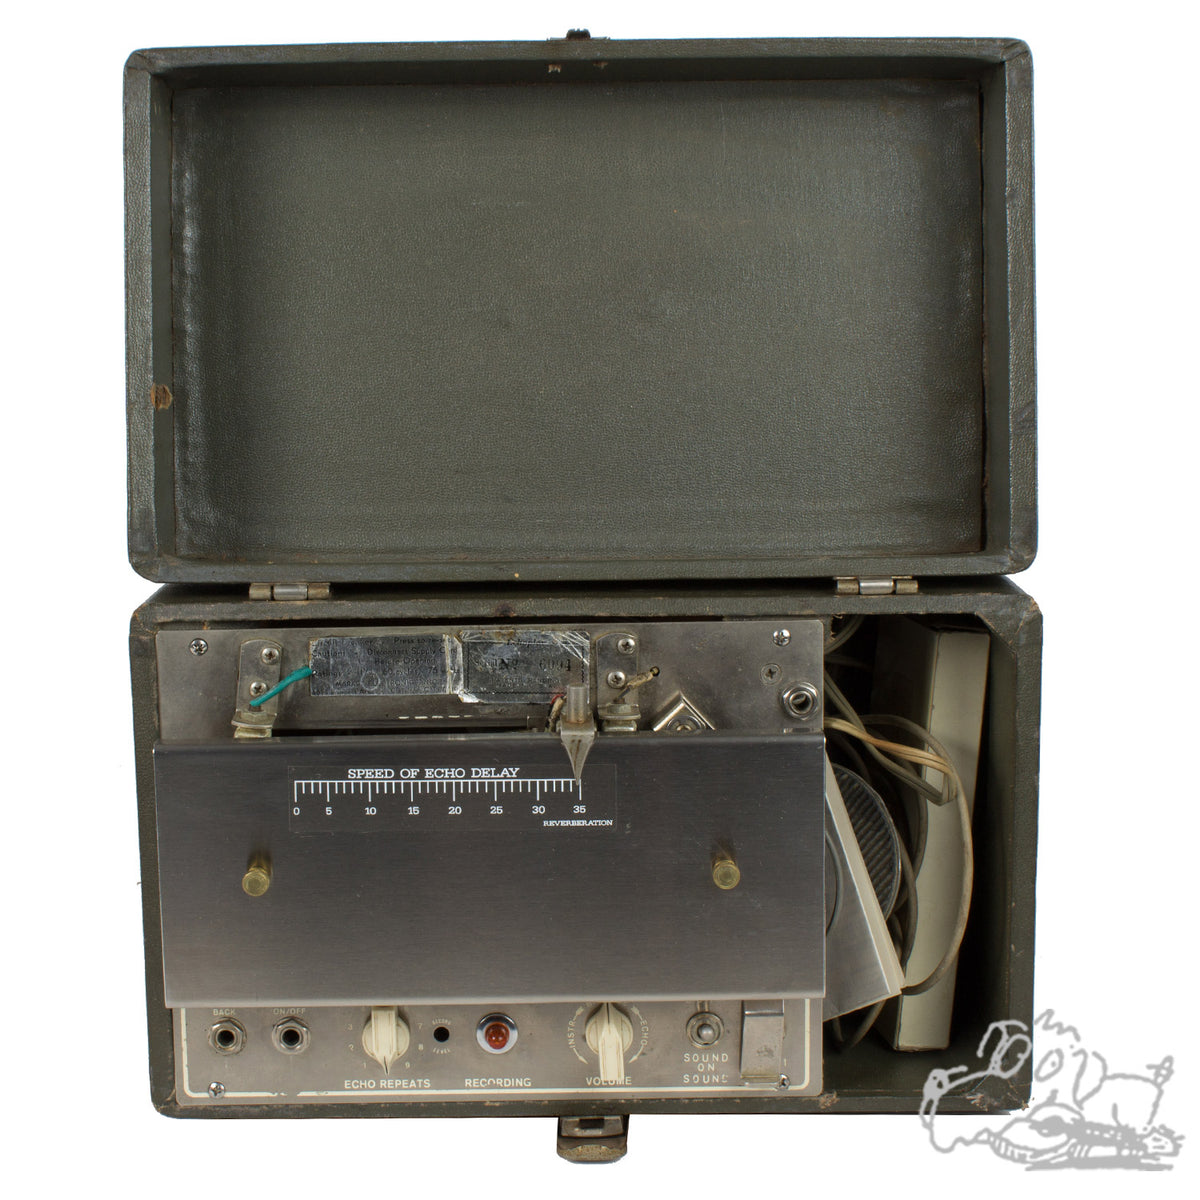 1969 Echoplex EP-2, Just serviced, Tube Goodness!